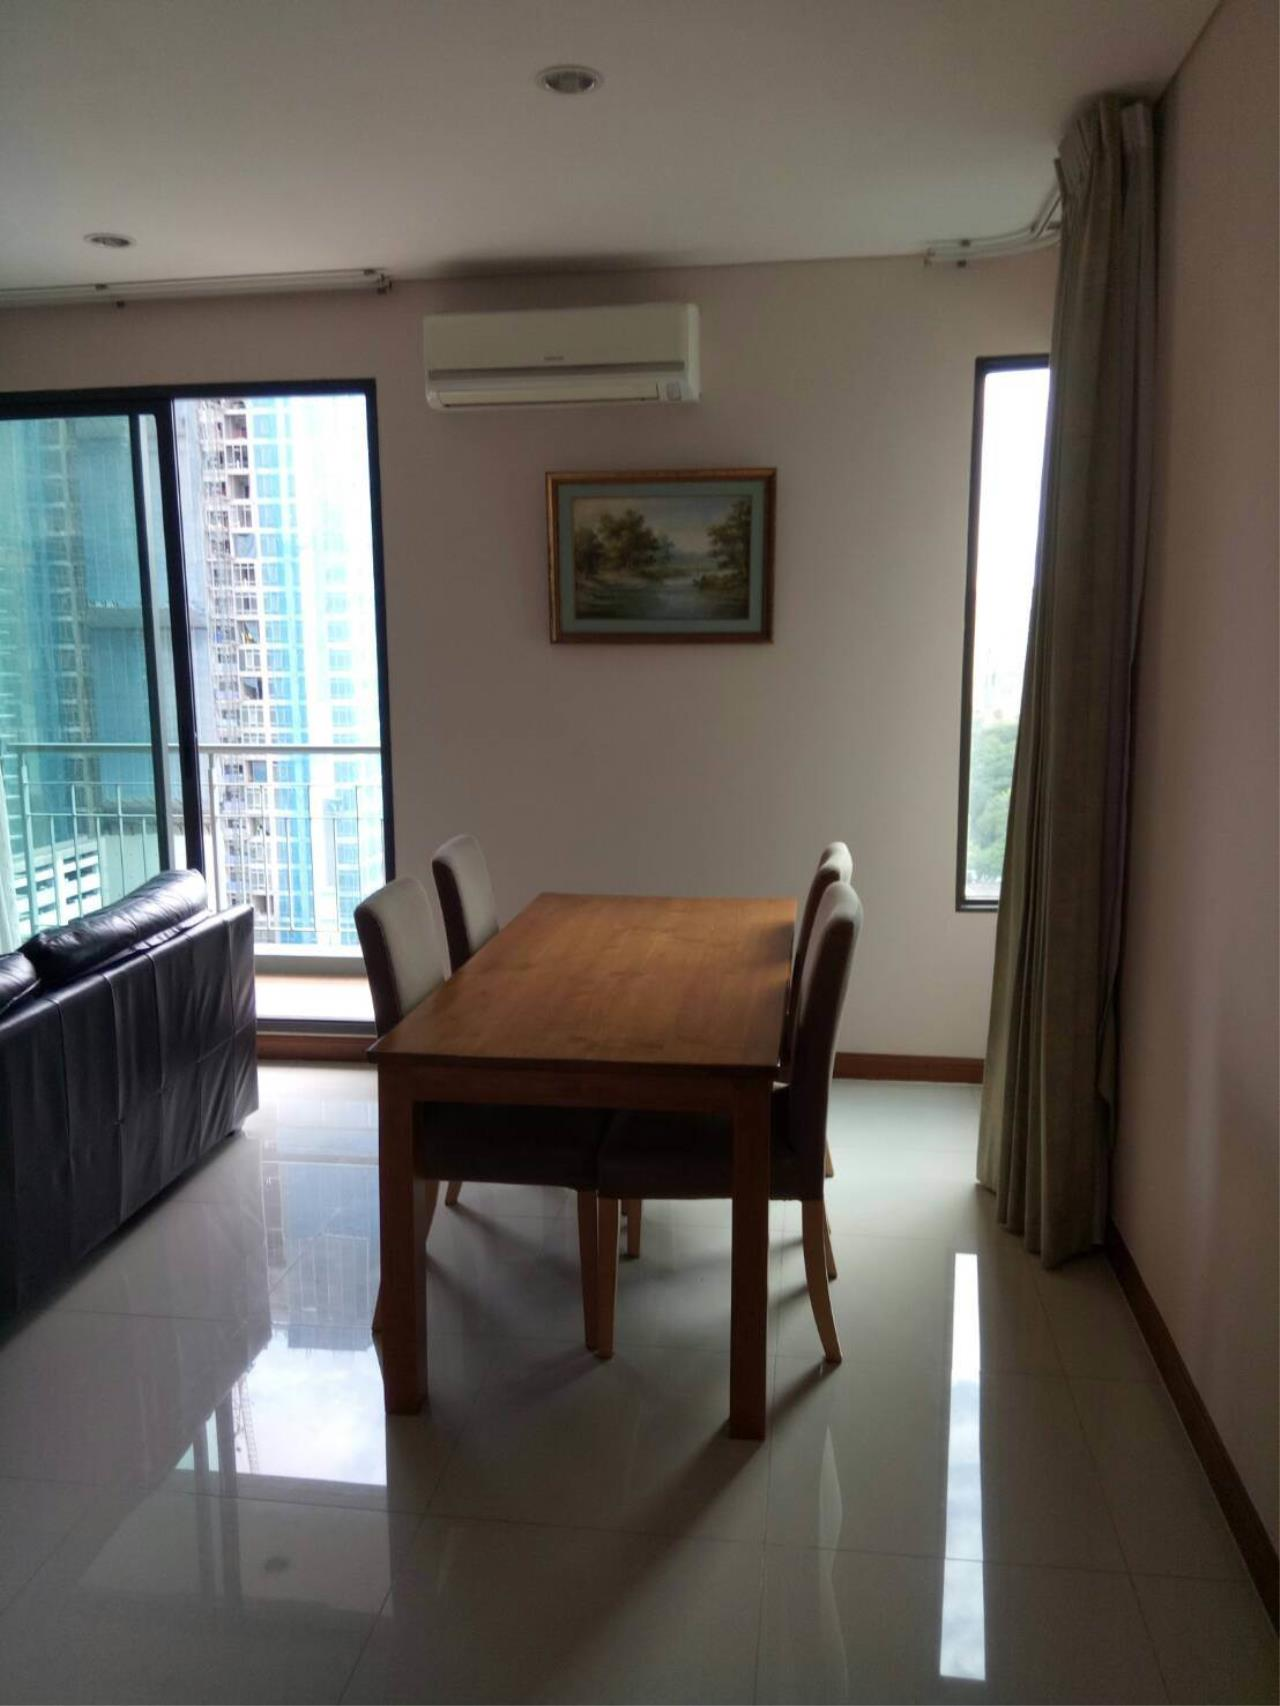 RE/MAX All Star Realty Agency's Villa Asoke for Rent (MRT Petchaburi) 2